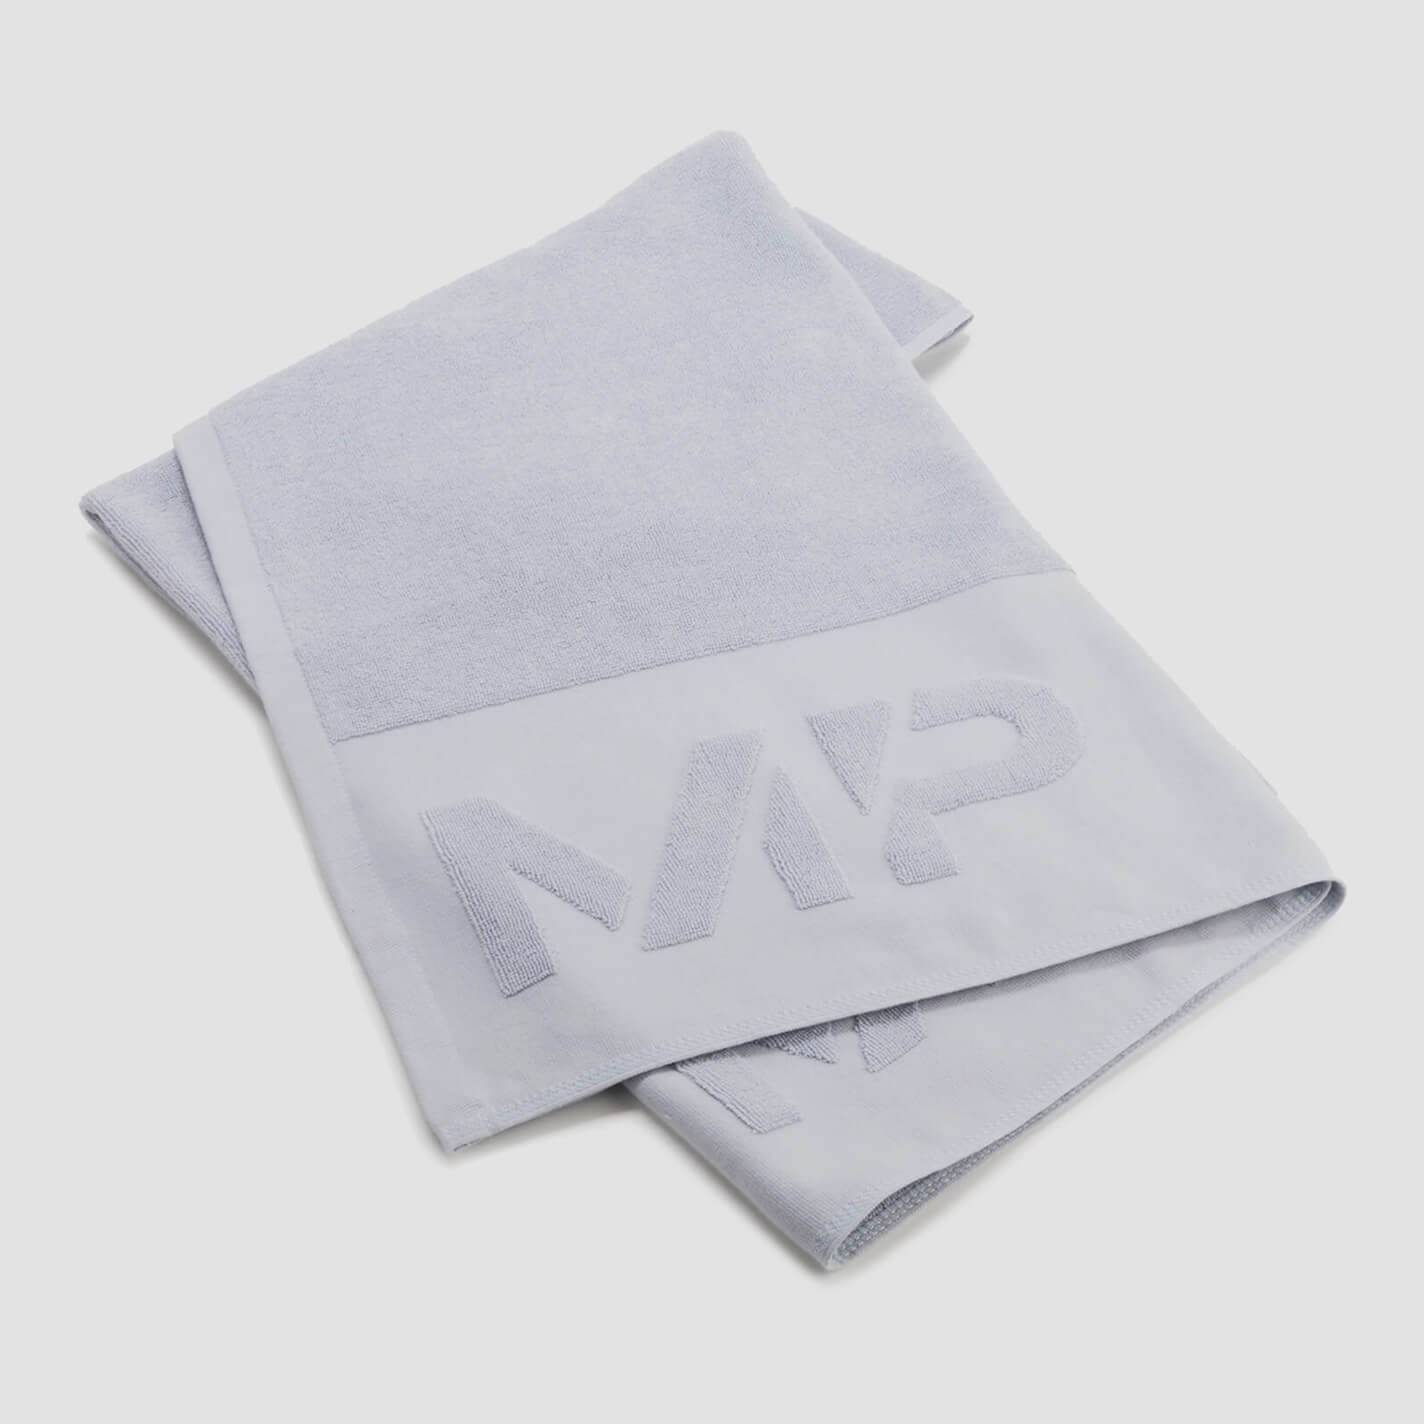 Myprotein MP Large Towel - Mid Grey